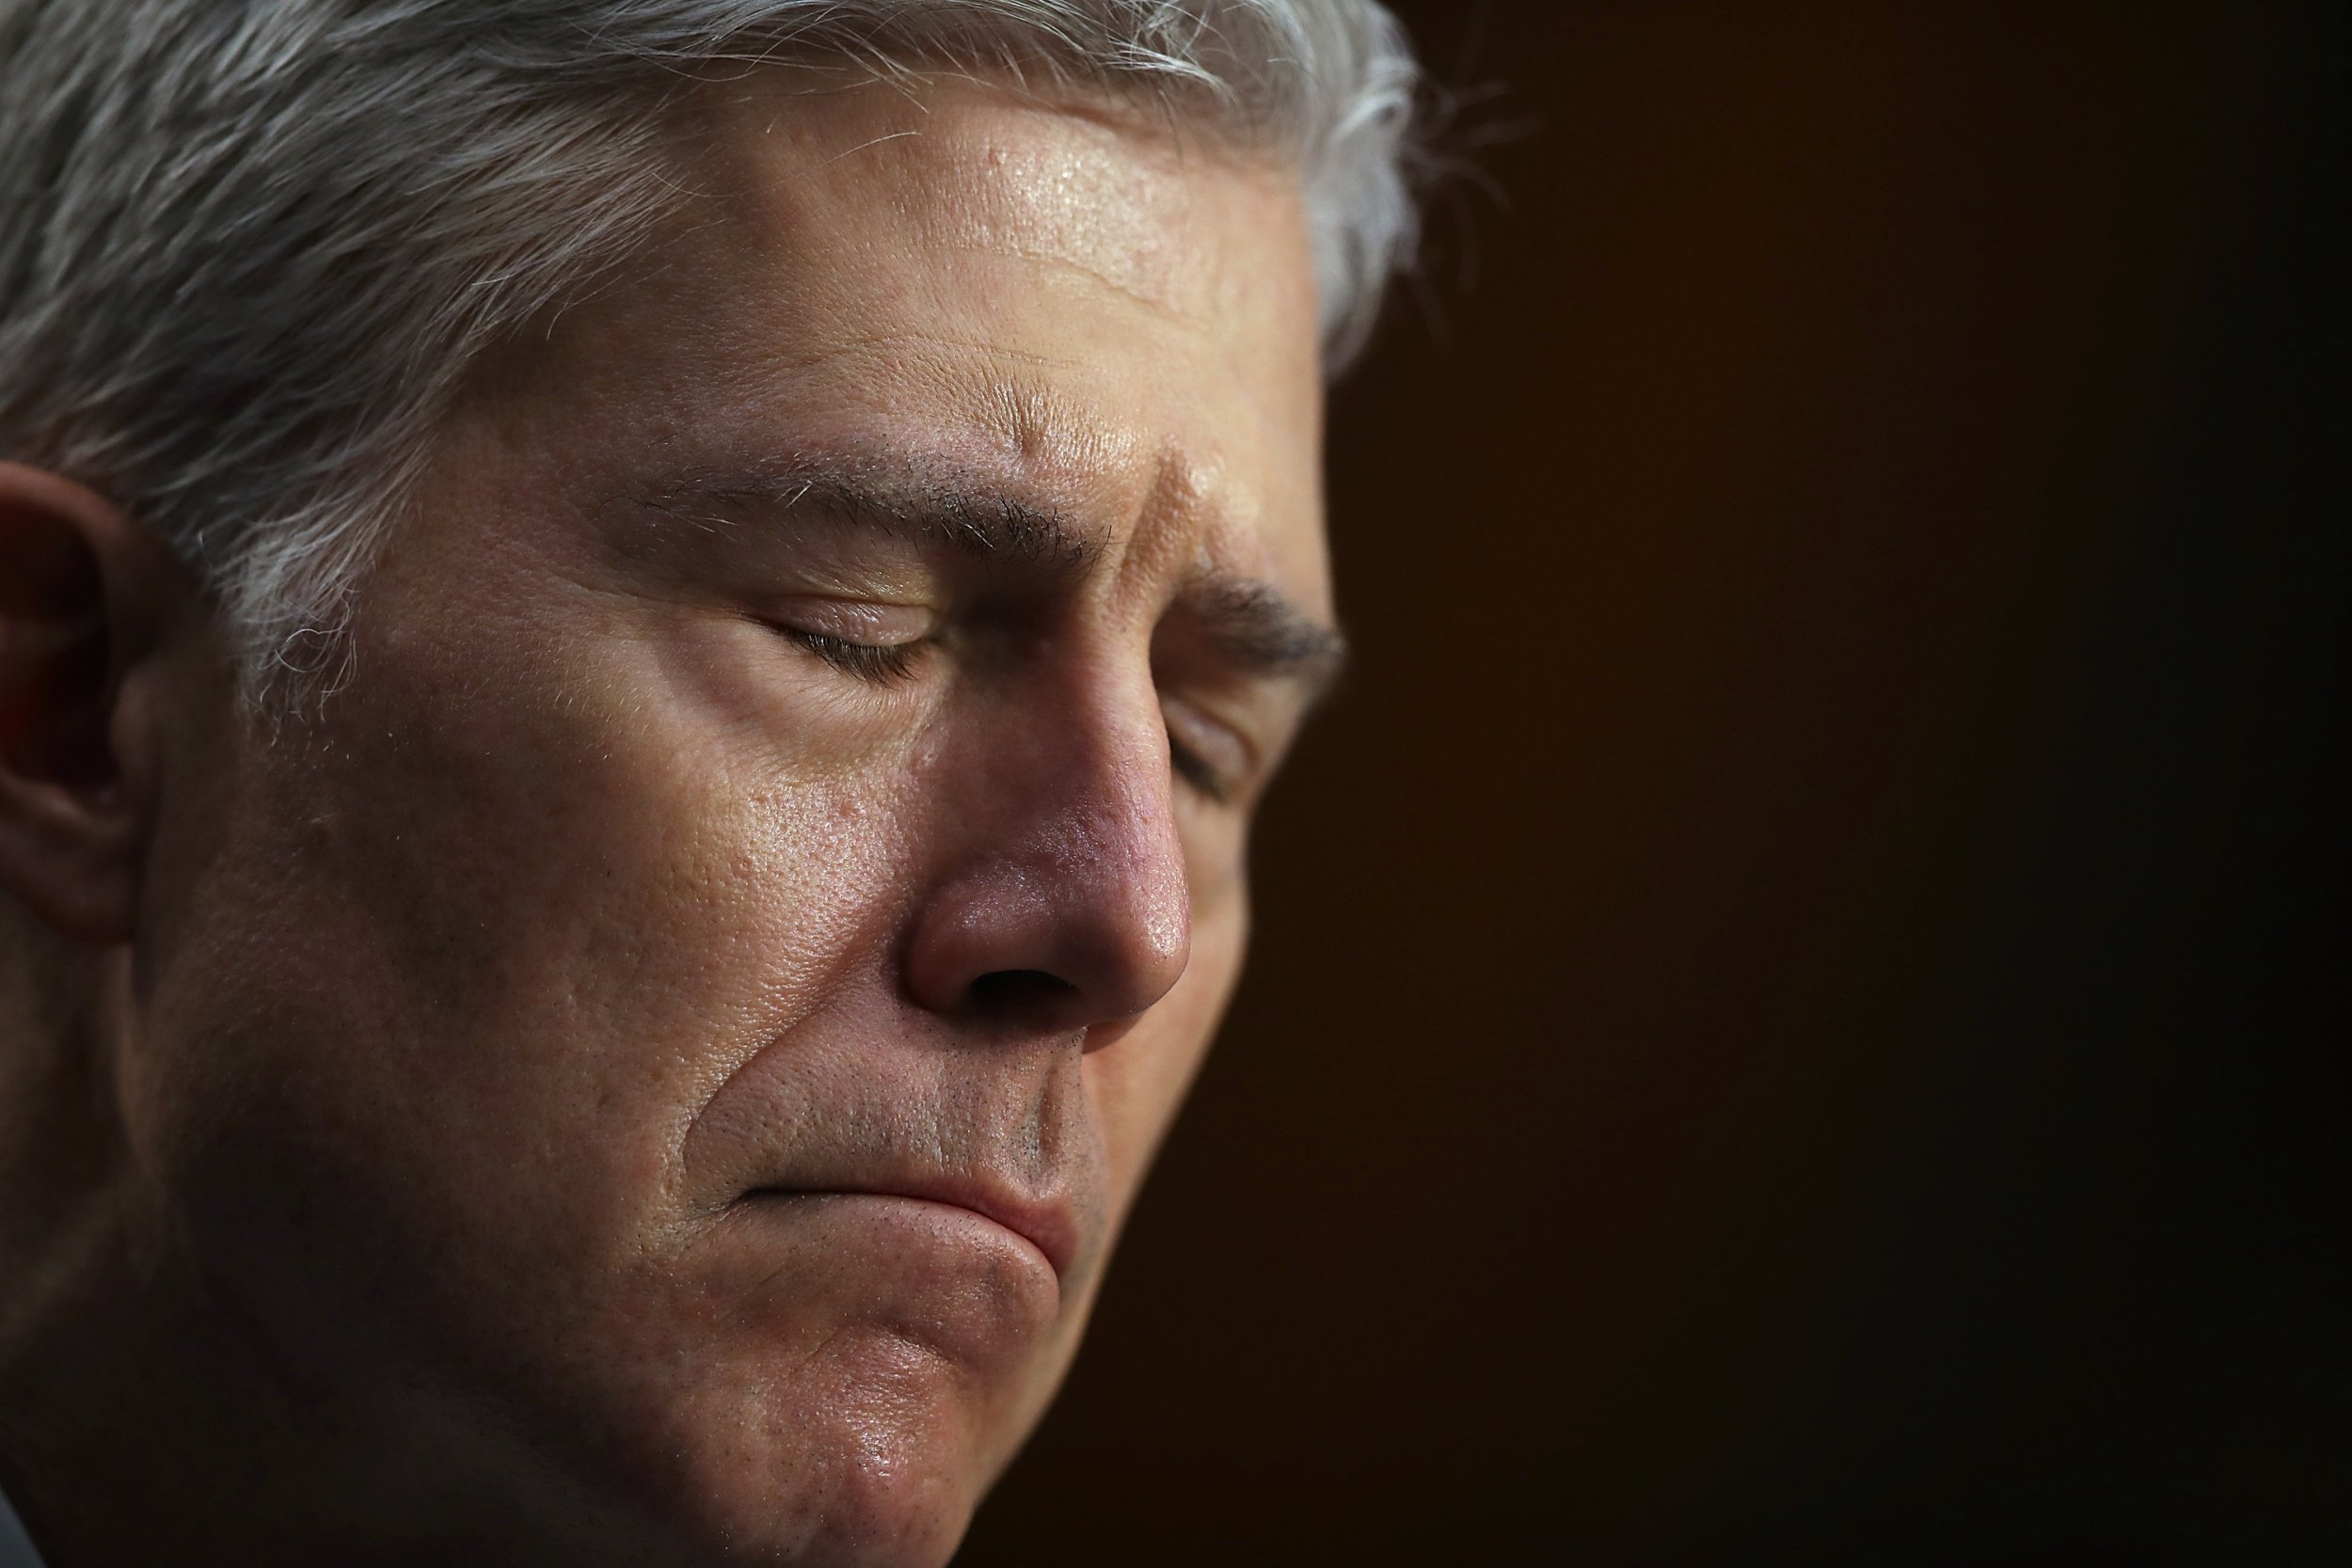 Robert Reich: No Gorsuch confirmation until Trump is cleared